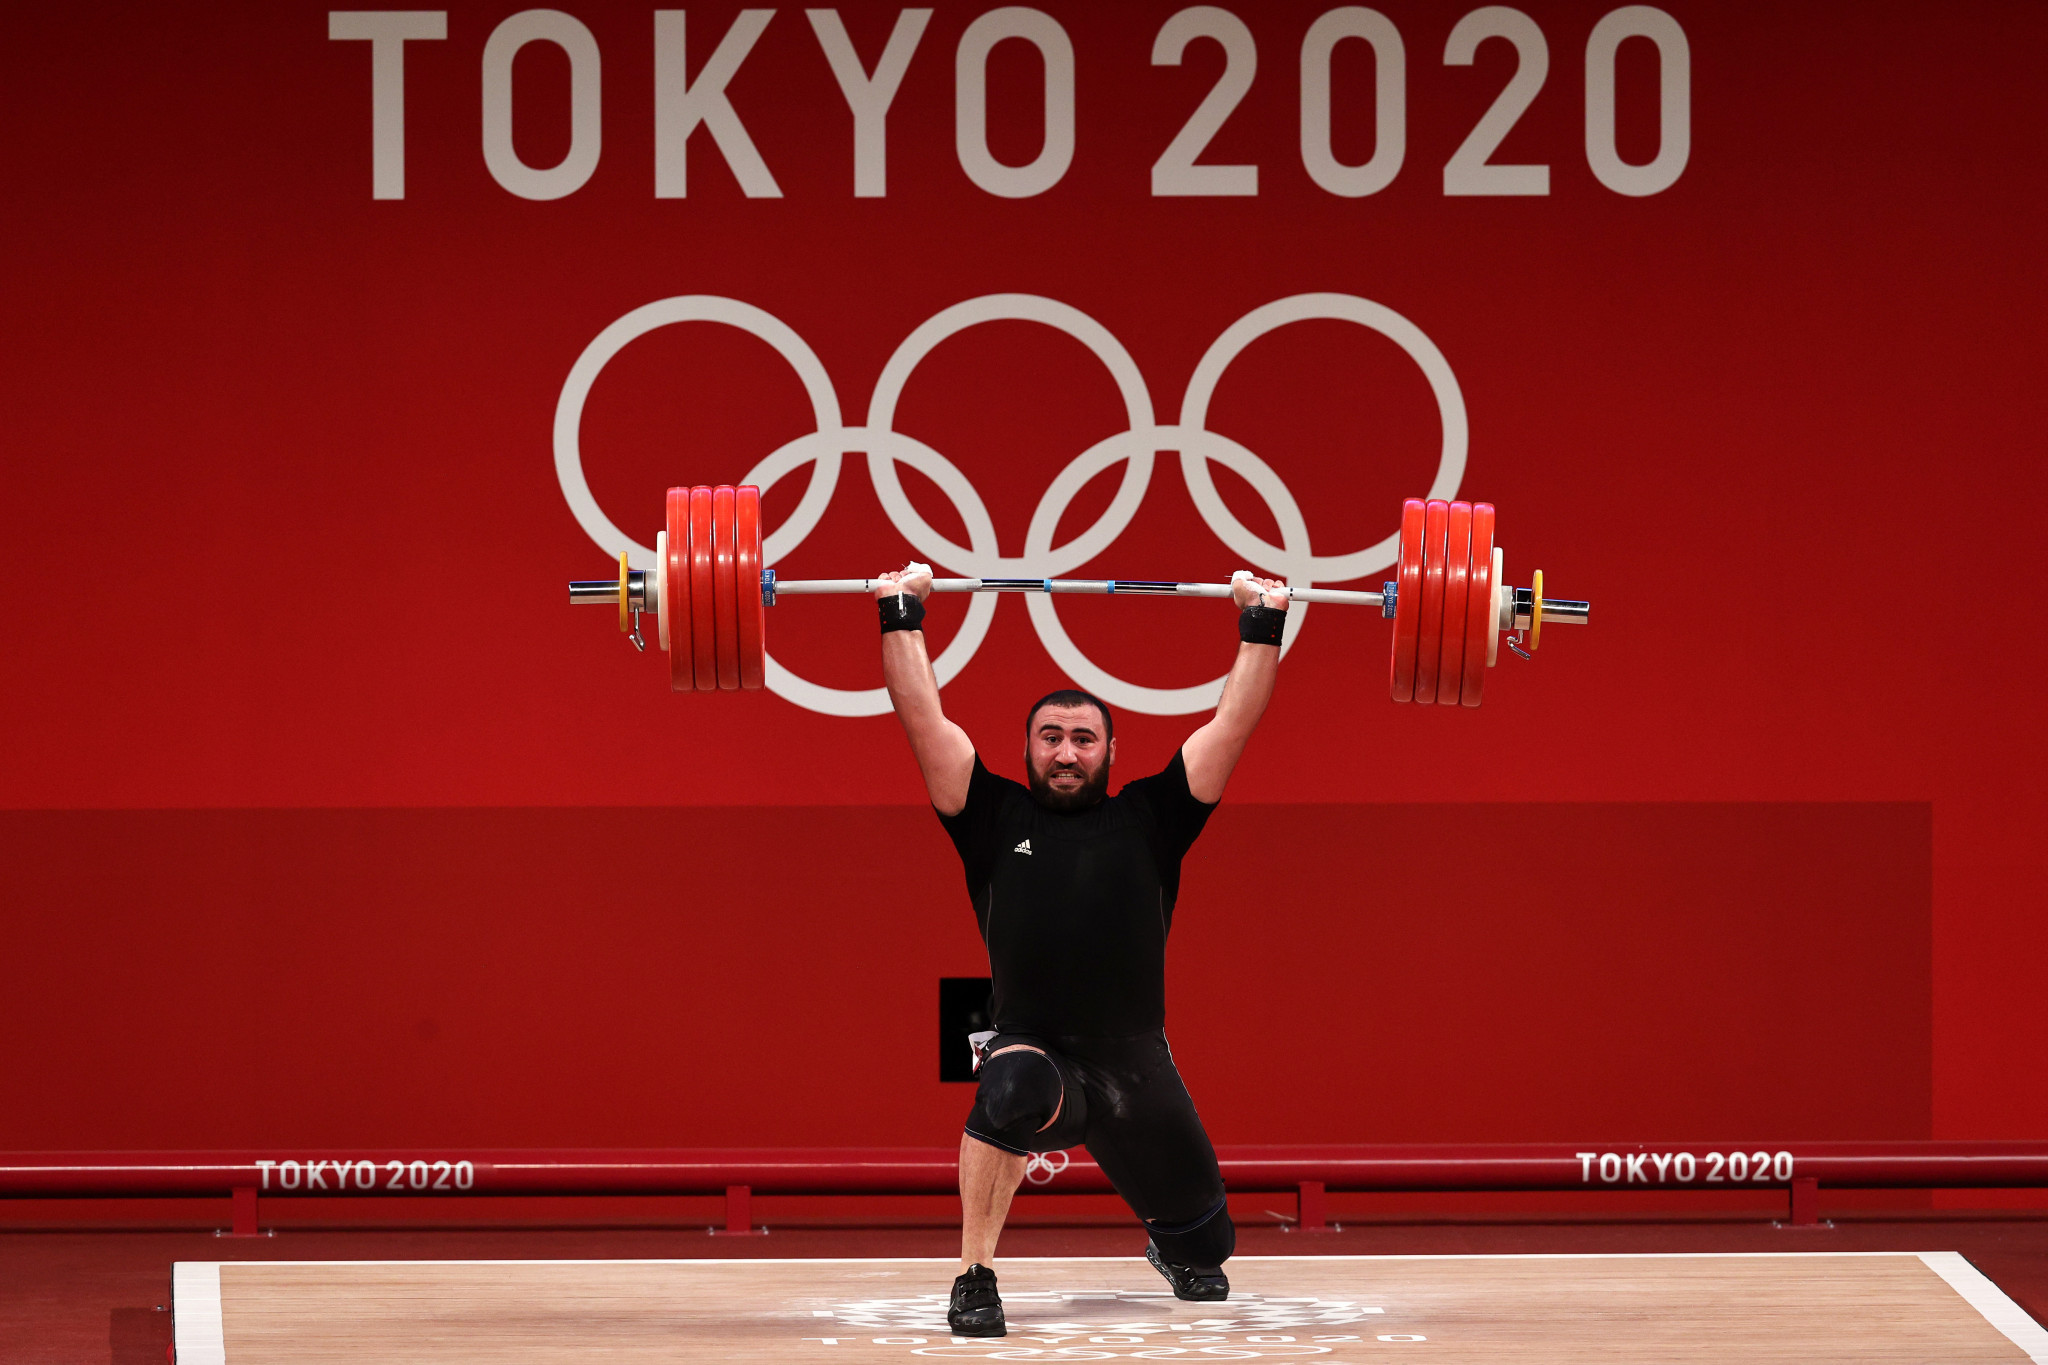 Simon Martirosyan, who won silver, was the favourite entering the men's 109kg weightlifting competition at Tokyo 2020 ©Getty Images